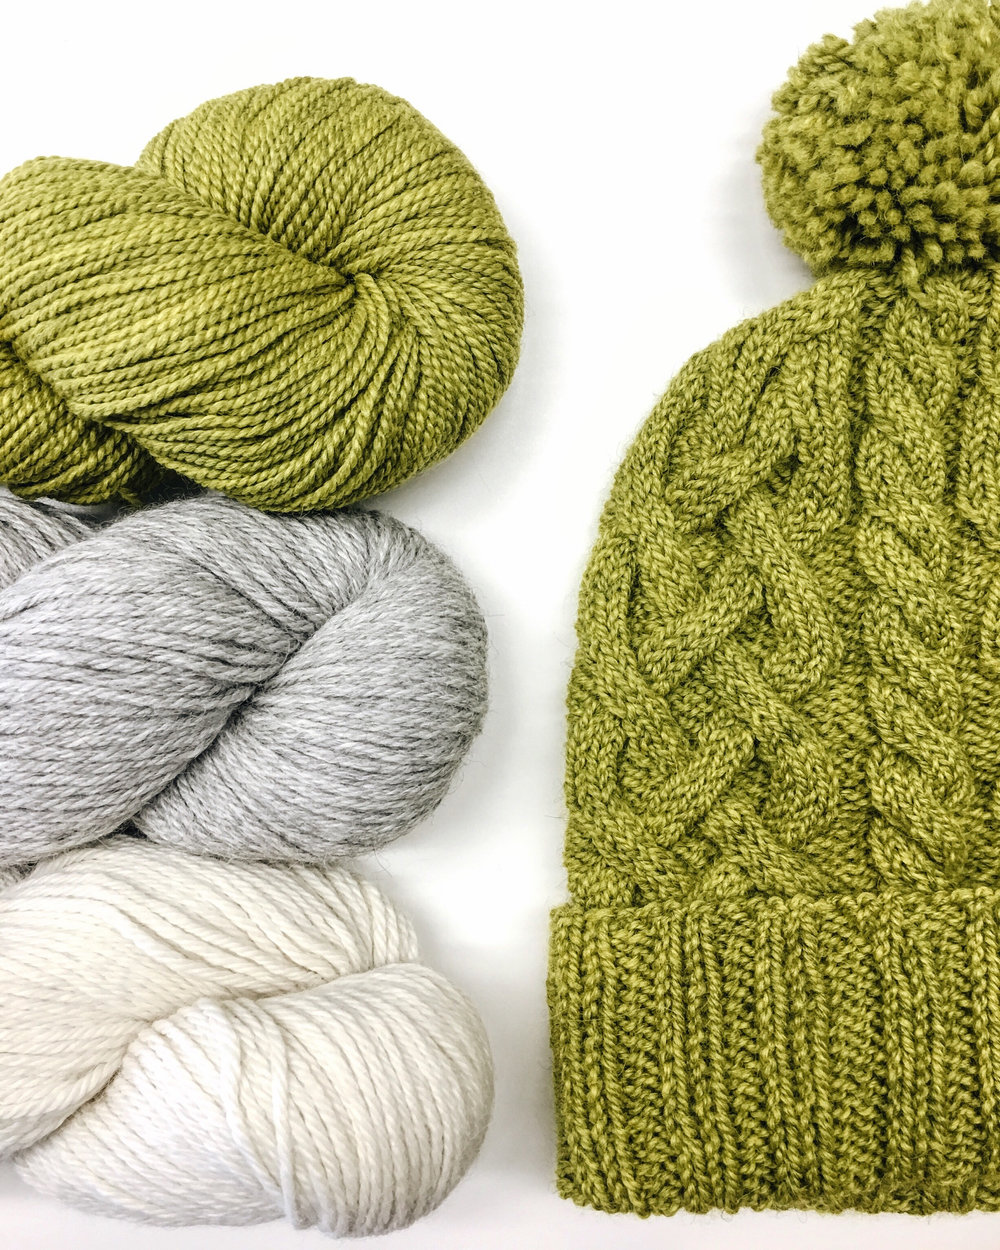 Week #8 of 16 of suggested projects — Yarns in the Square